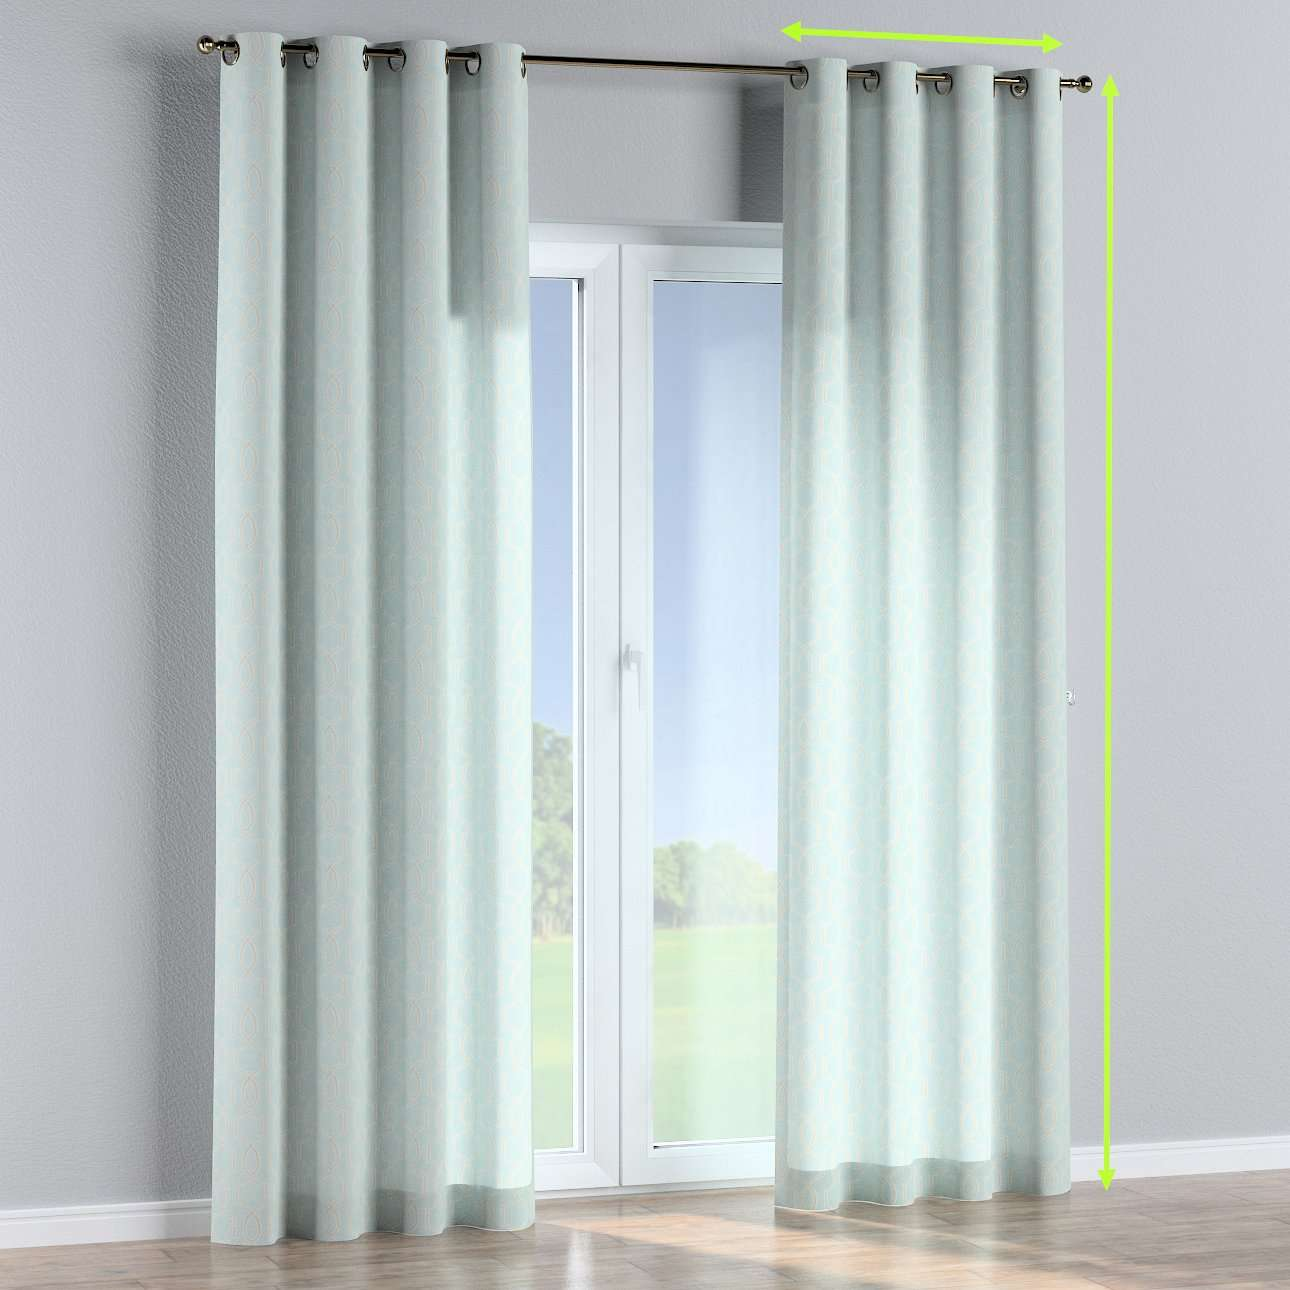 Eyelet curtain in collection Comics/Geometrical, fabric: 141-24